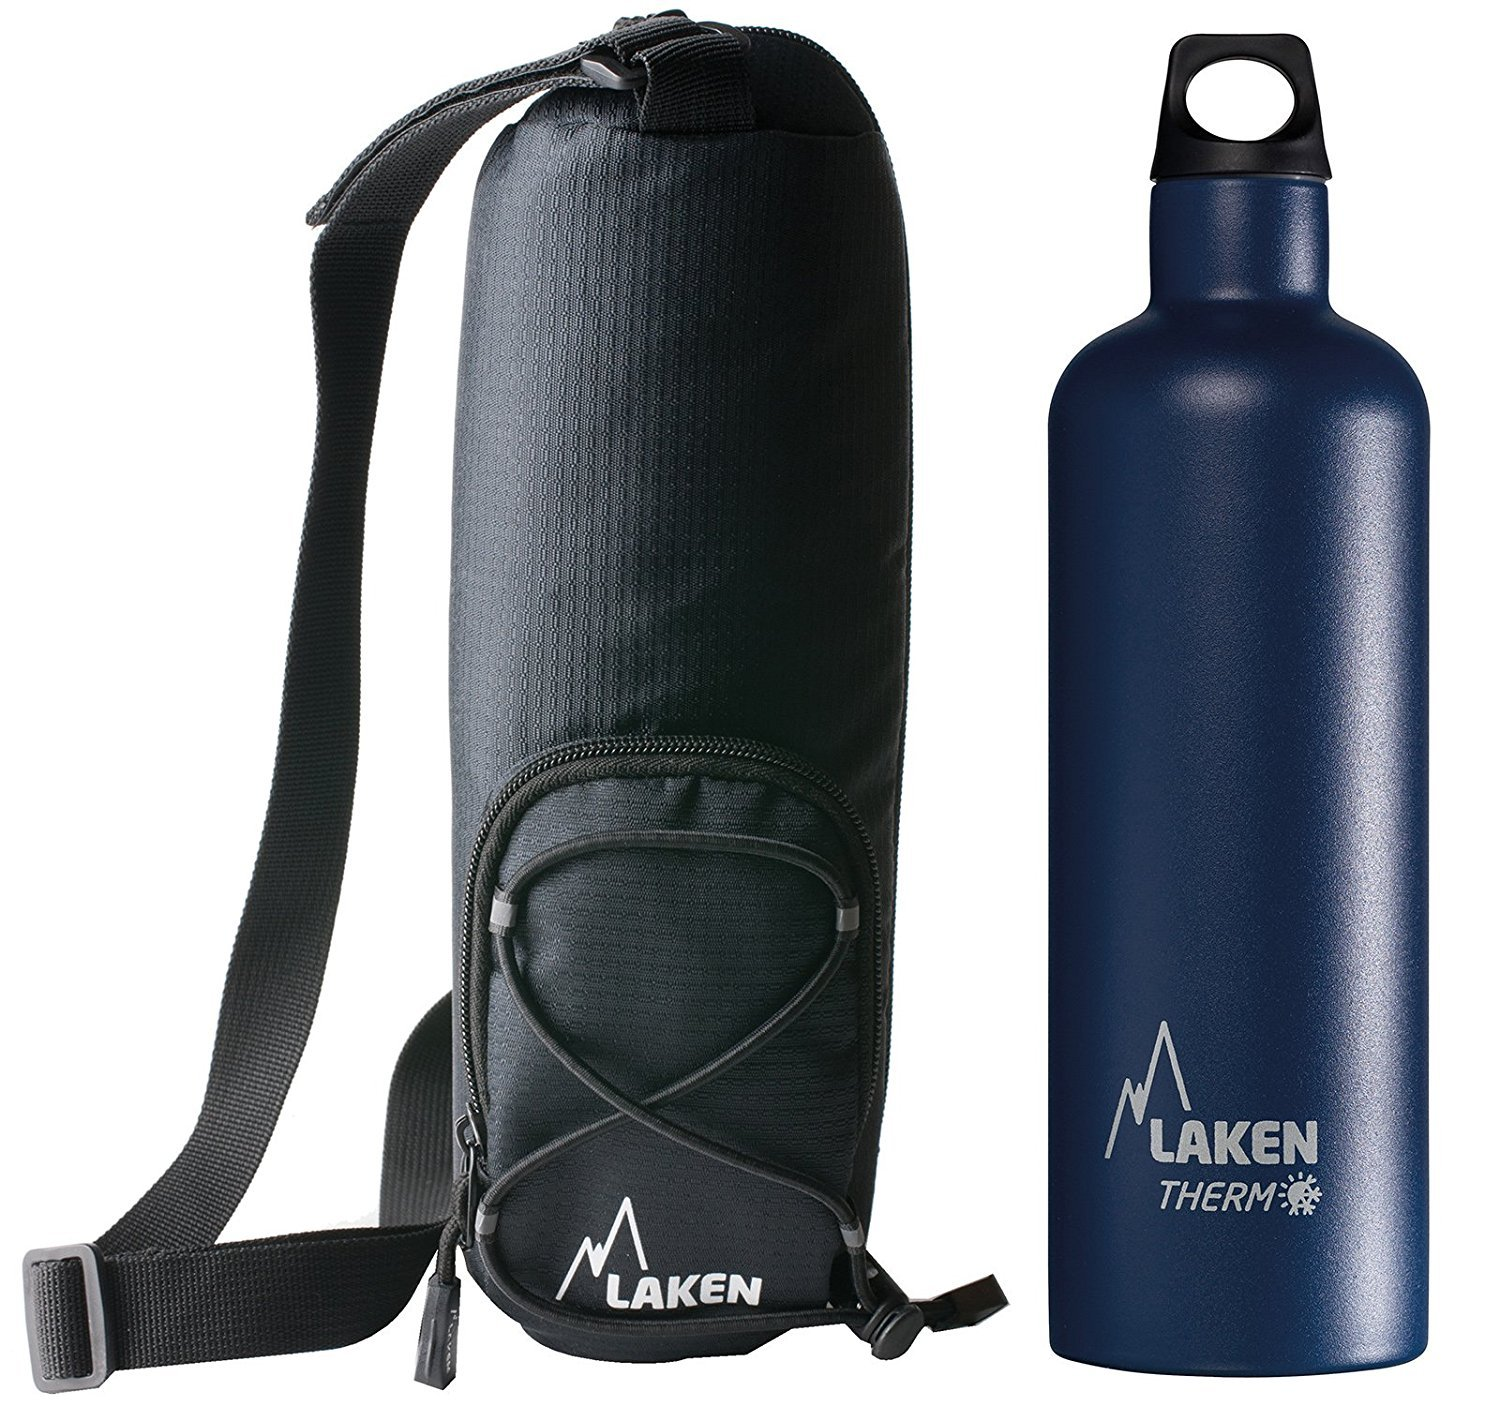 Laken Thermo Futura Vacuum Insulated Stainless Steel Water Bottle Narrow Mouth Laken Bottle Corportaion